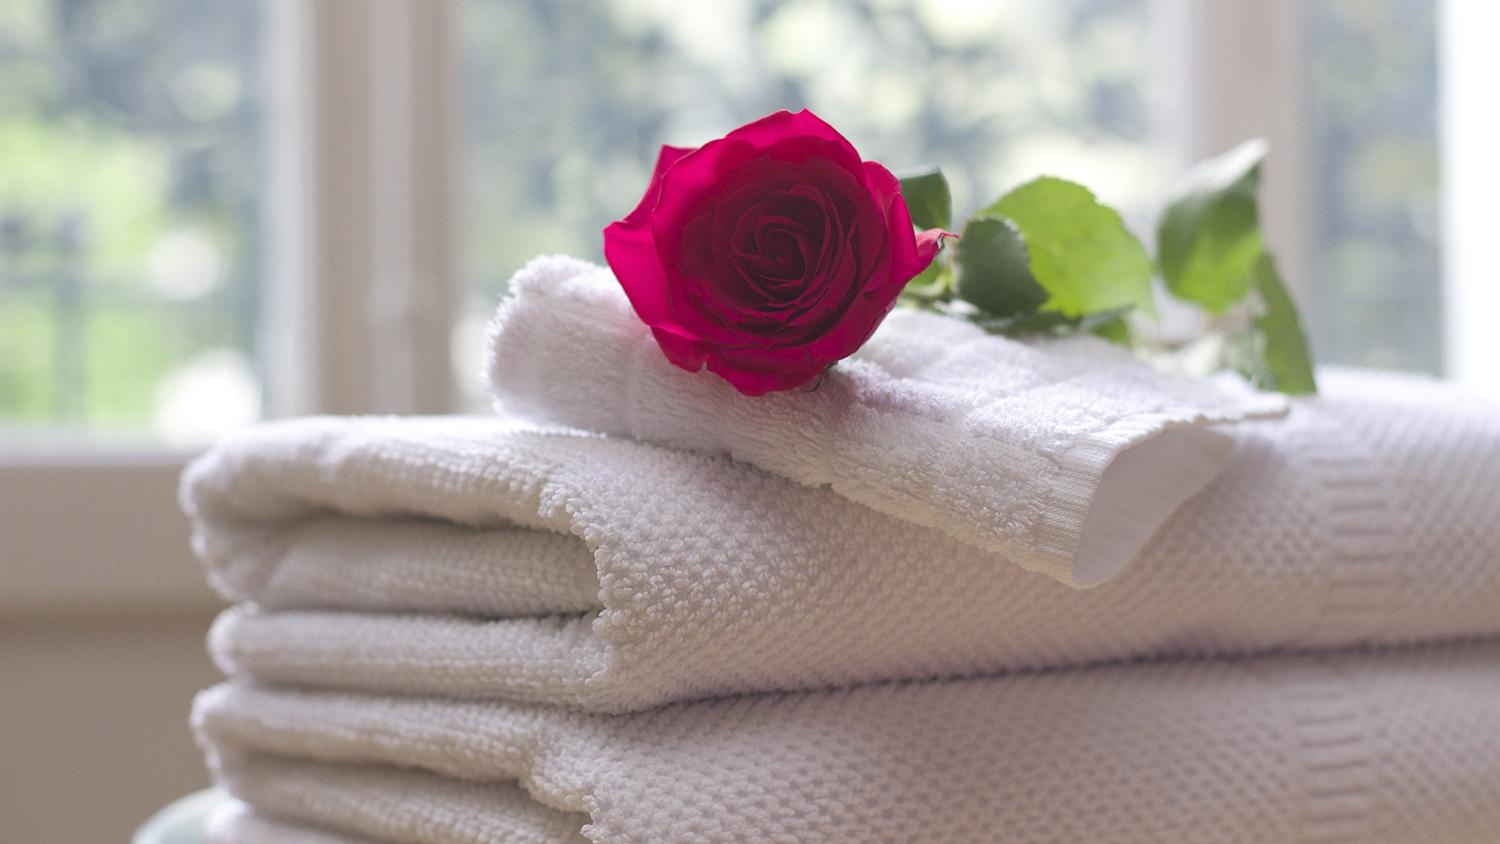 Towel - Pampering Spa Treatments